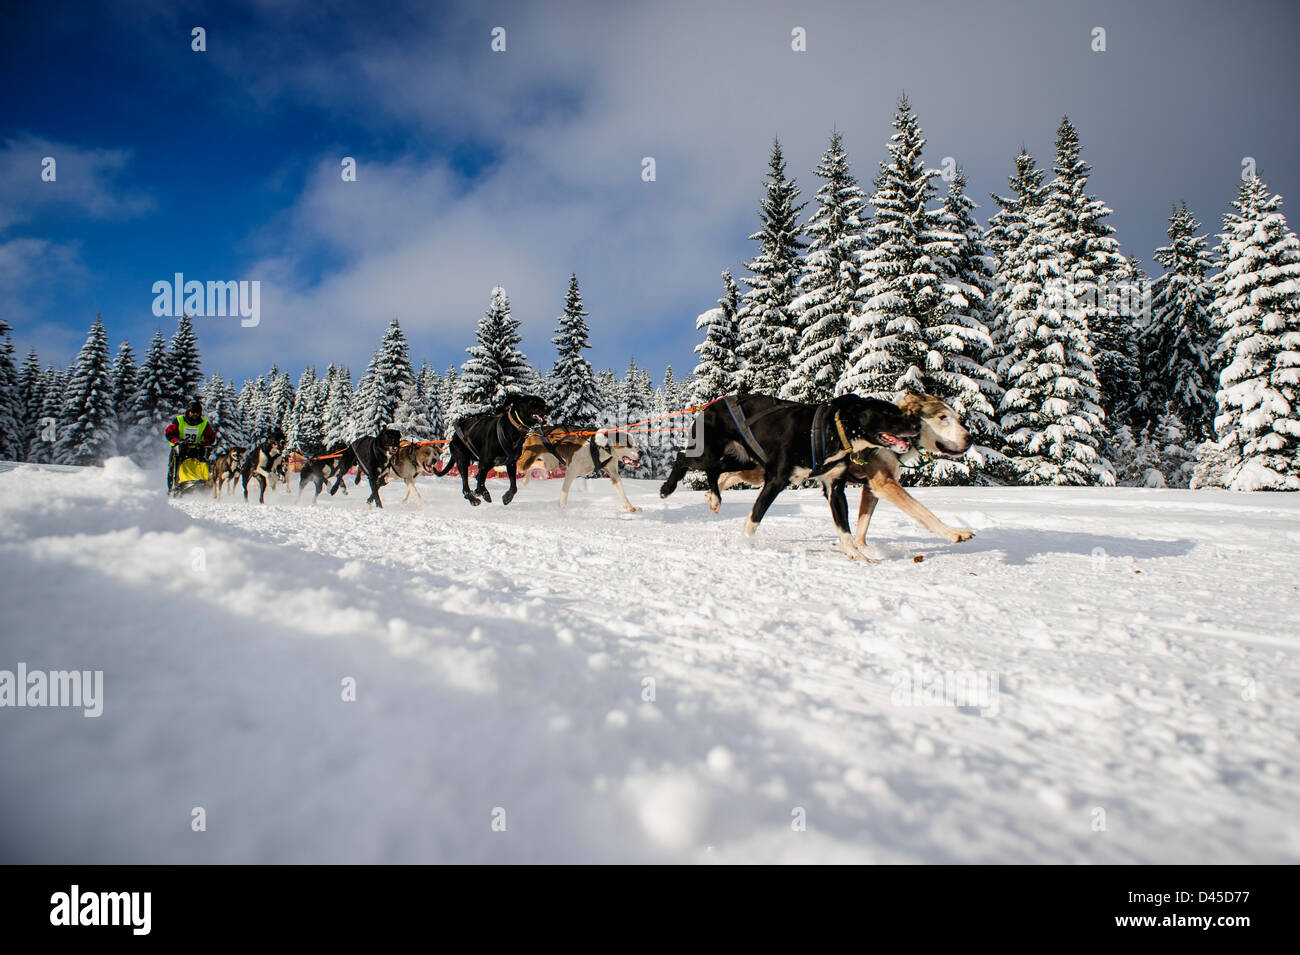 A sled dog team racing in the Izery mountains, Jakuszyce, Poland. - Stock Image